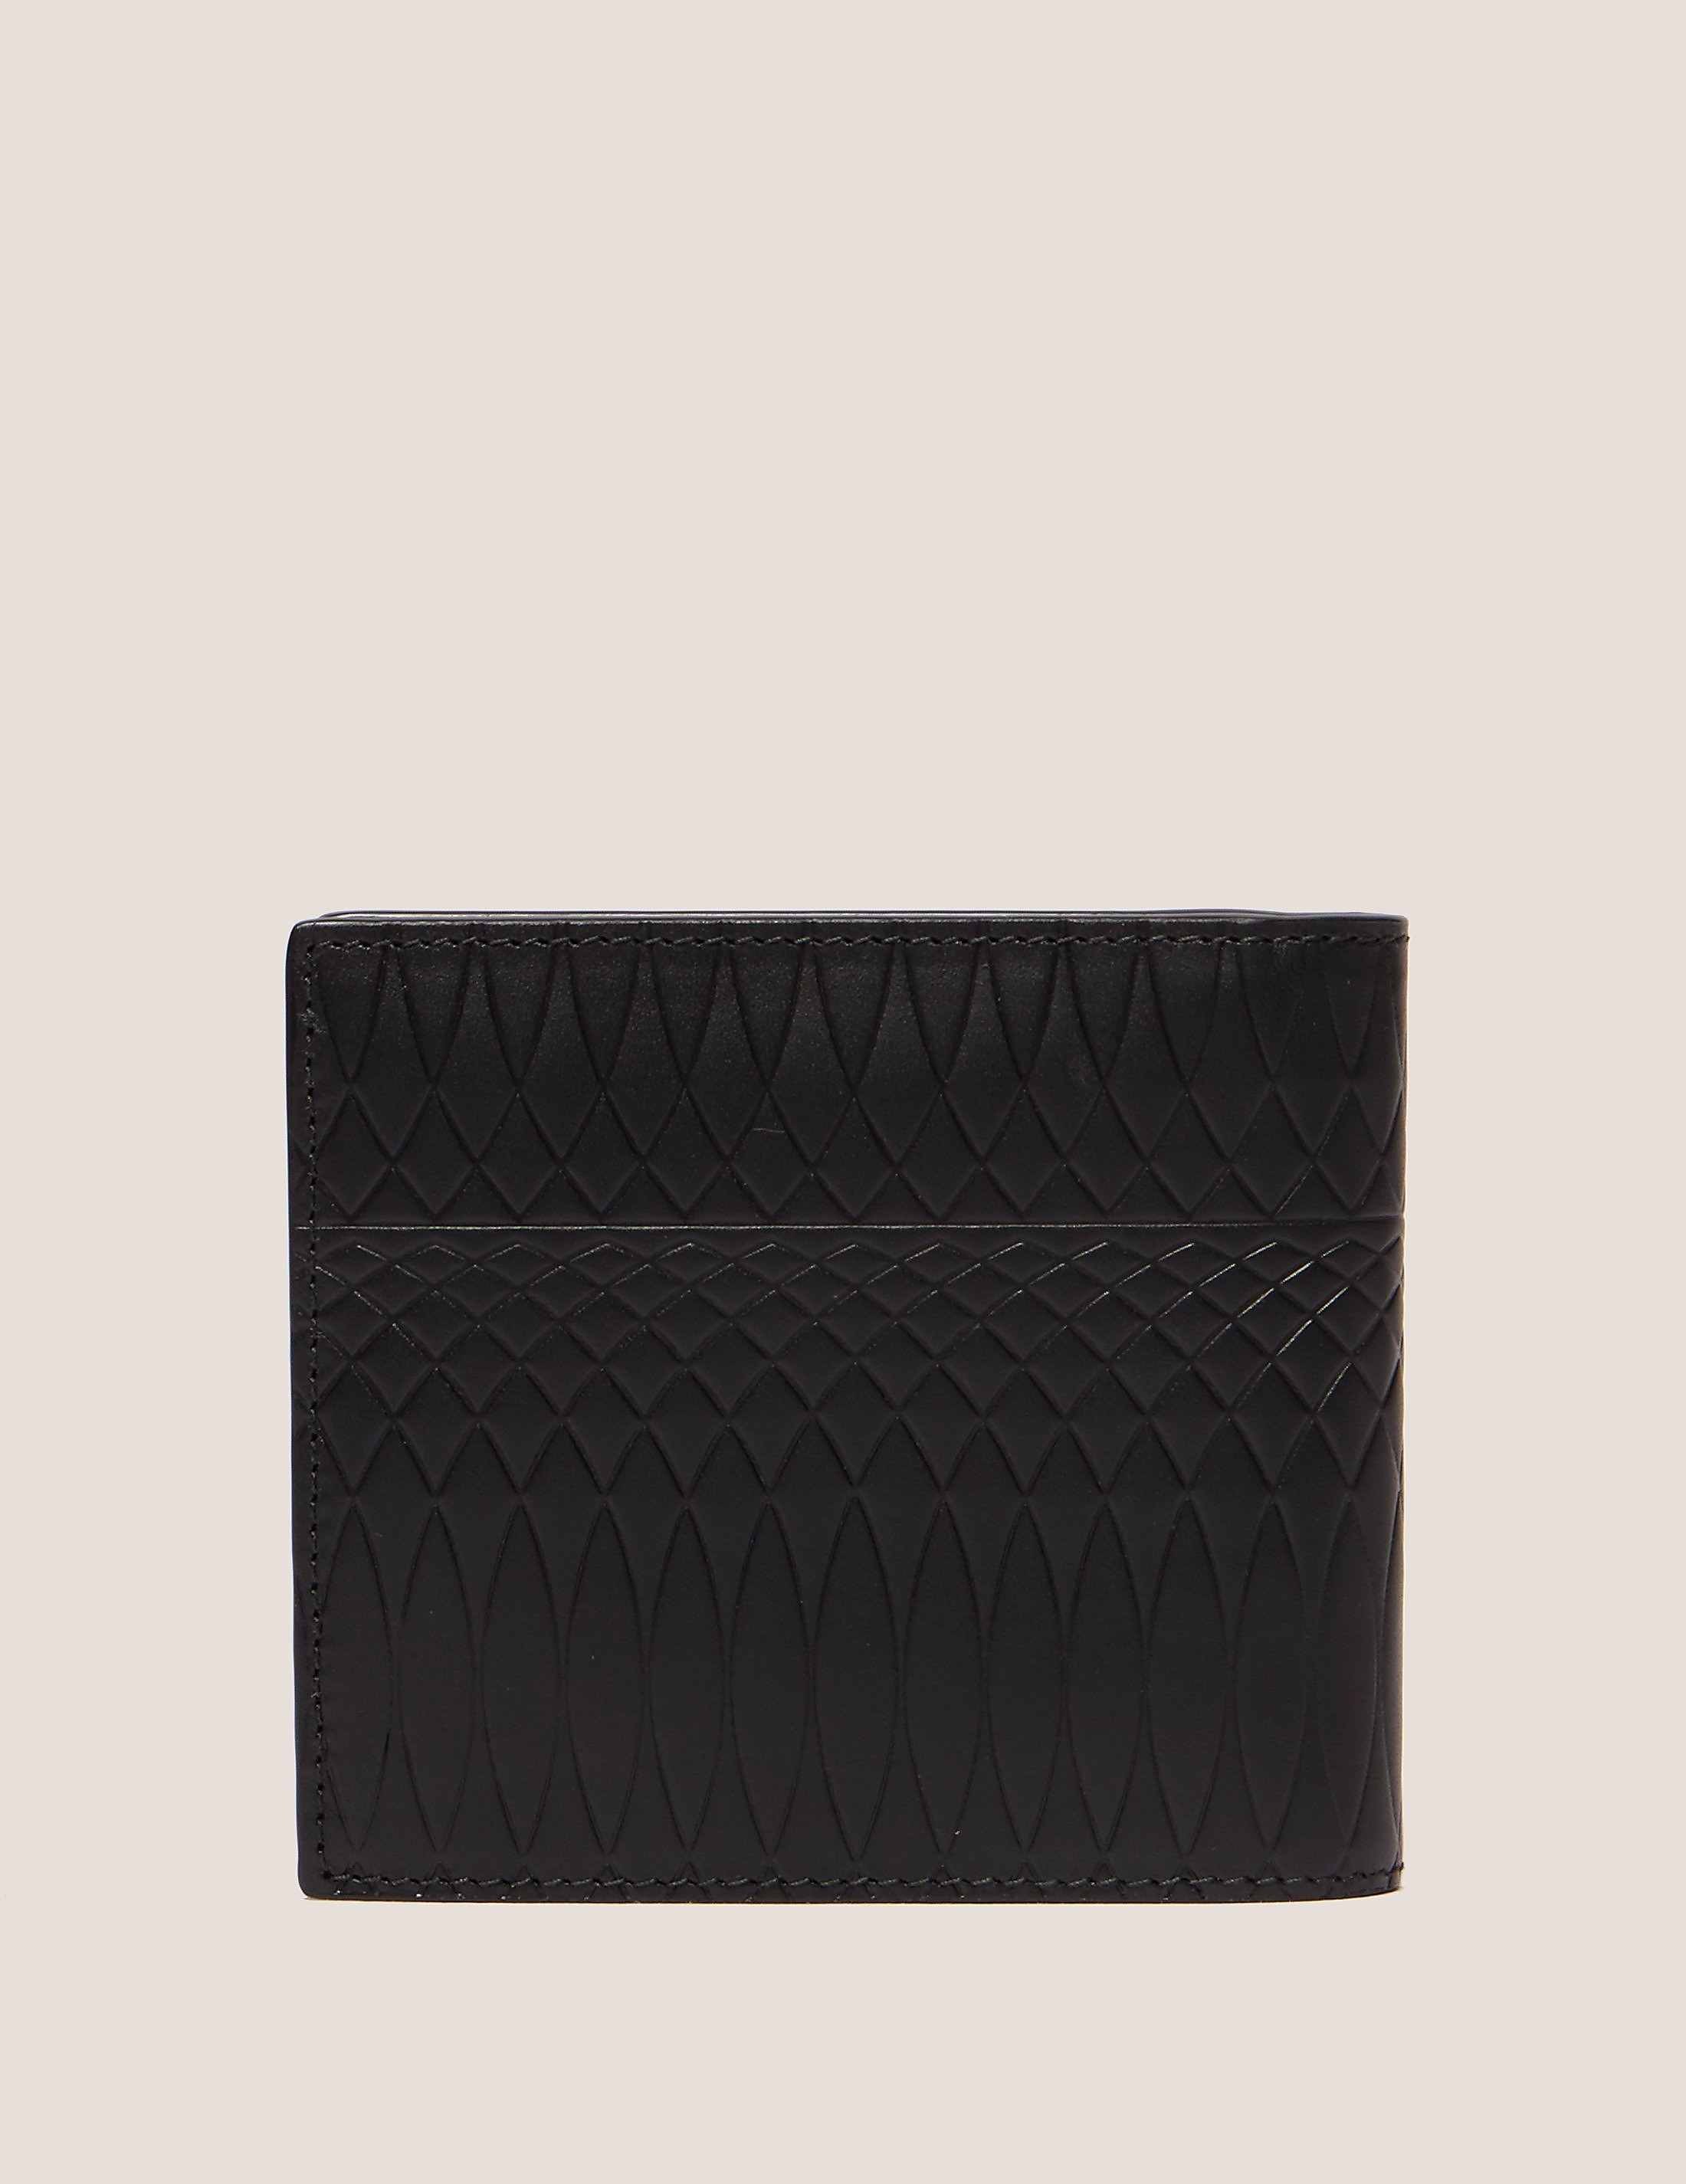 Paul Smith No.9 Leather Billfold Wallet